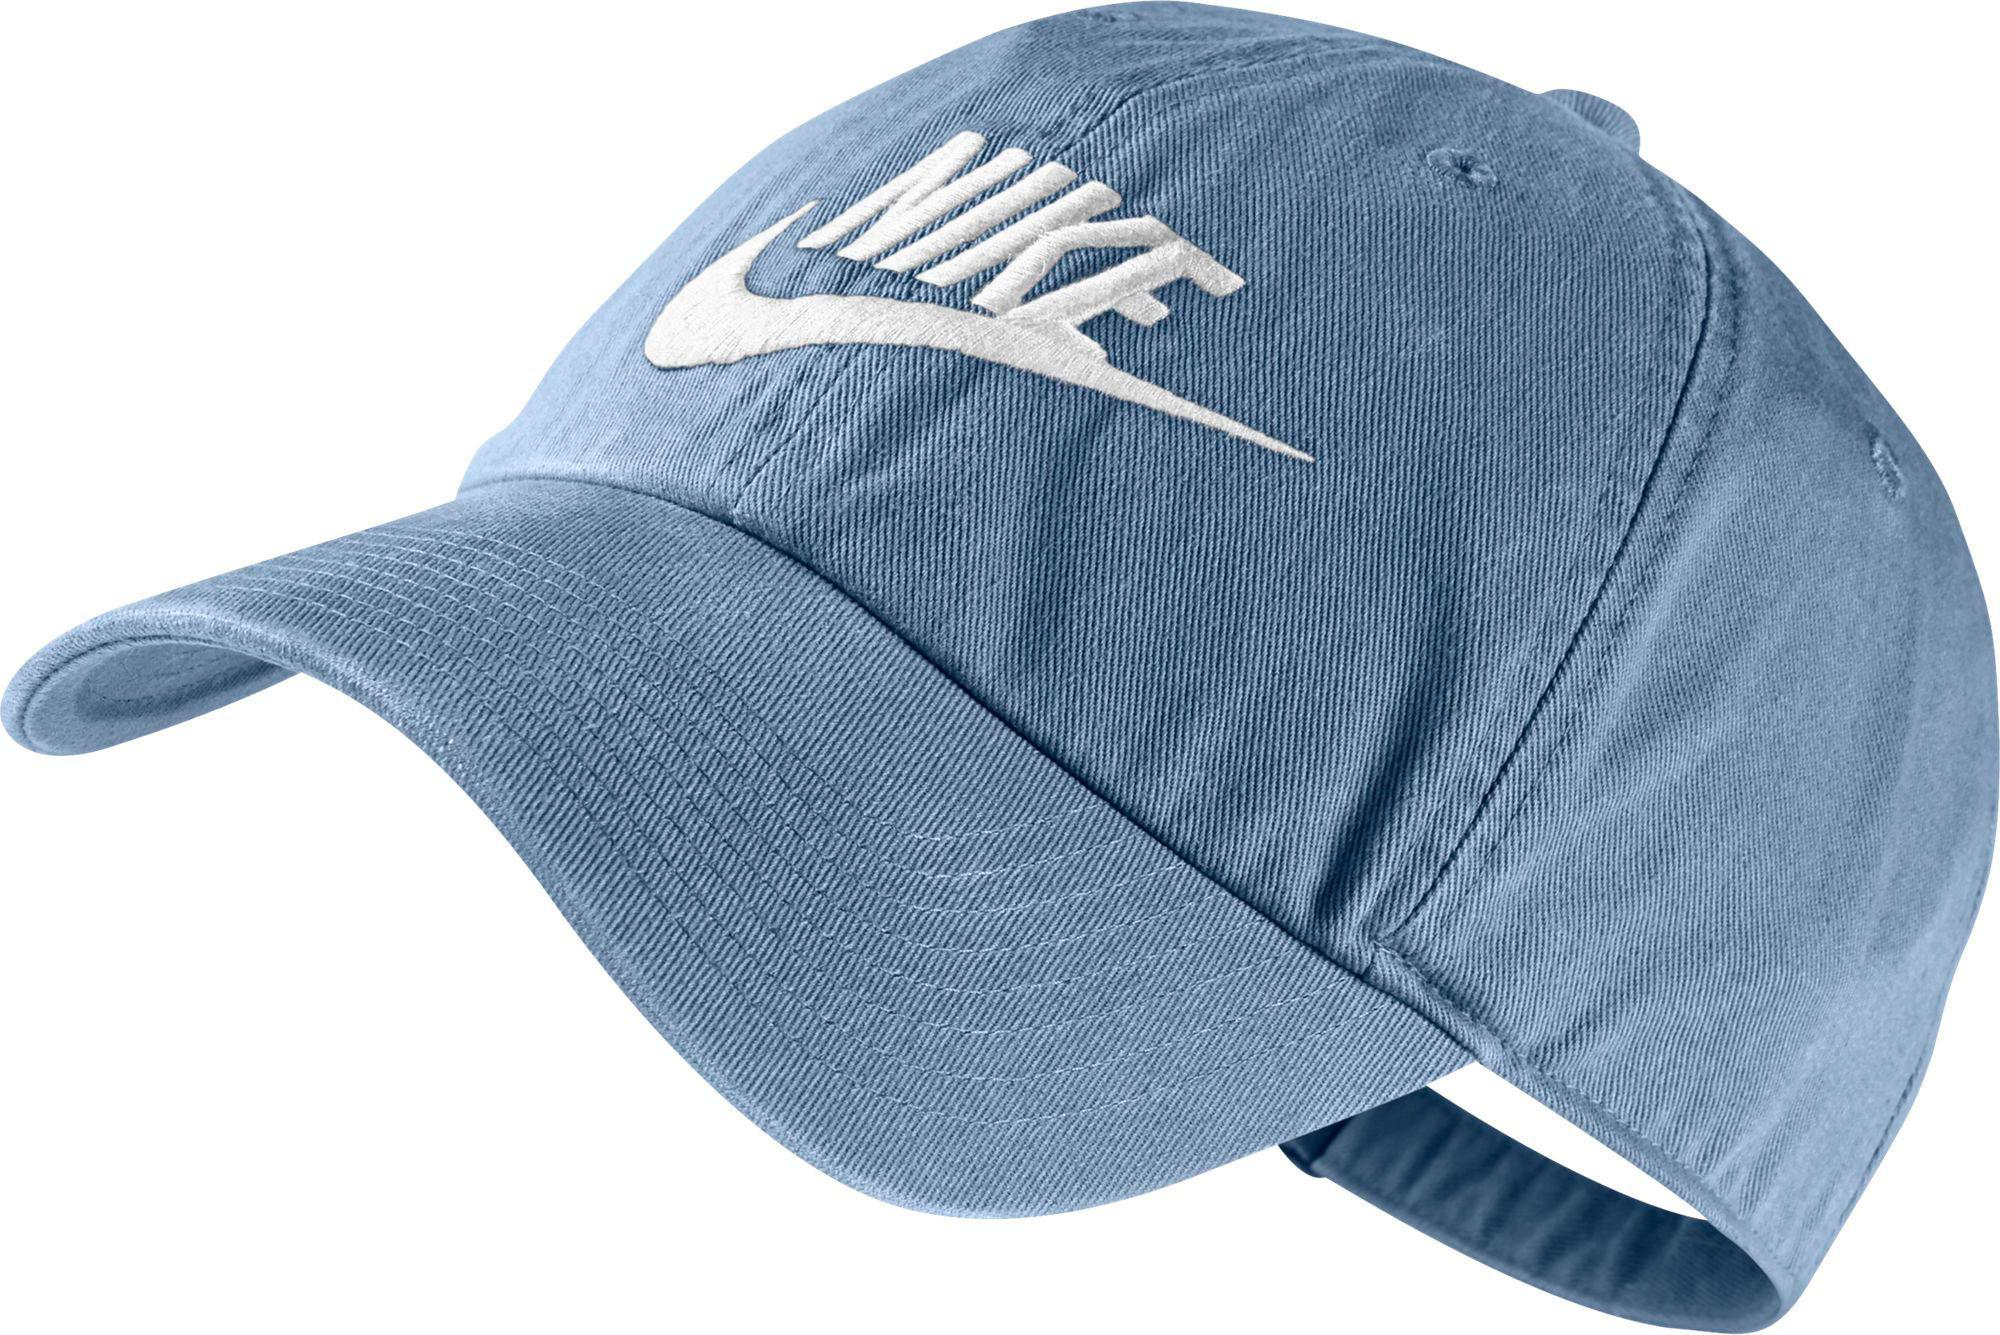 38a43f78f4575 ... denmark lyst nike heritage 86 futura adjustable hat in blue for men  9ccc1 2fe46